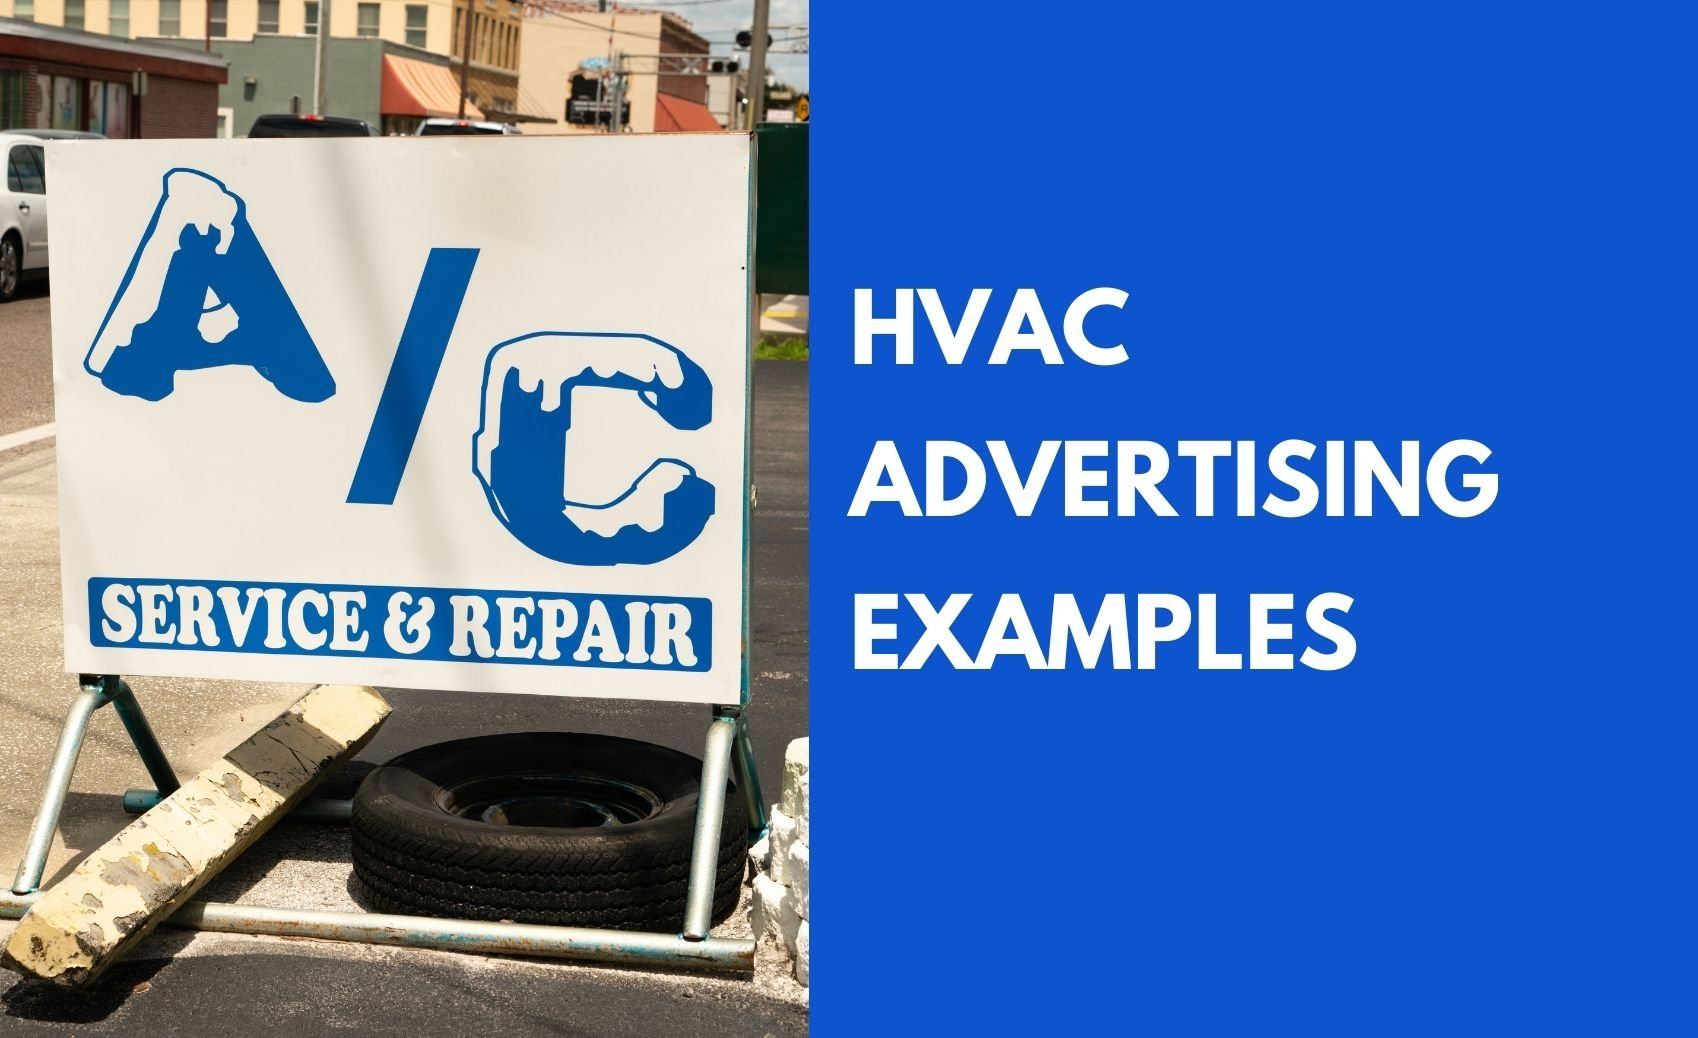 HVAC Advertising Examples And The Anatomy Of A Google Search Ad